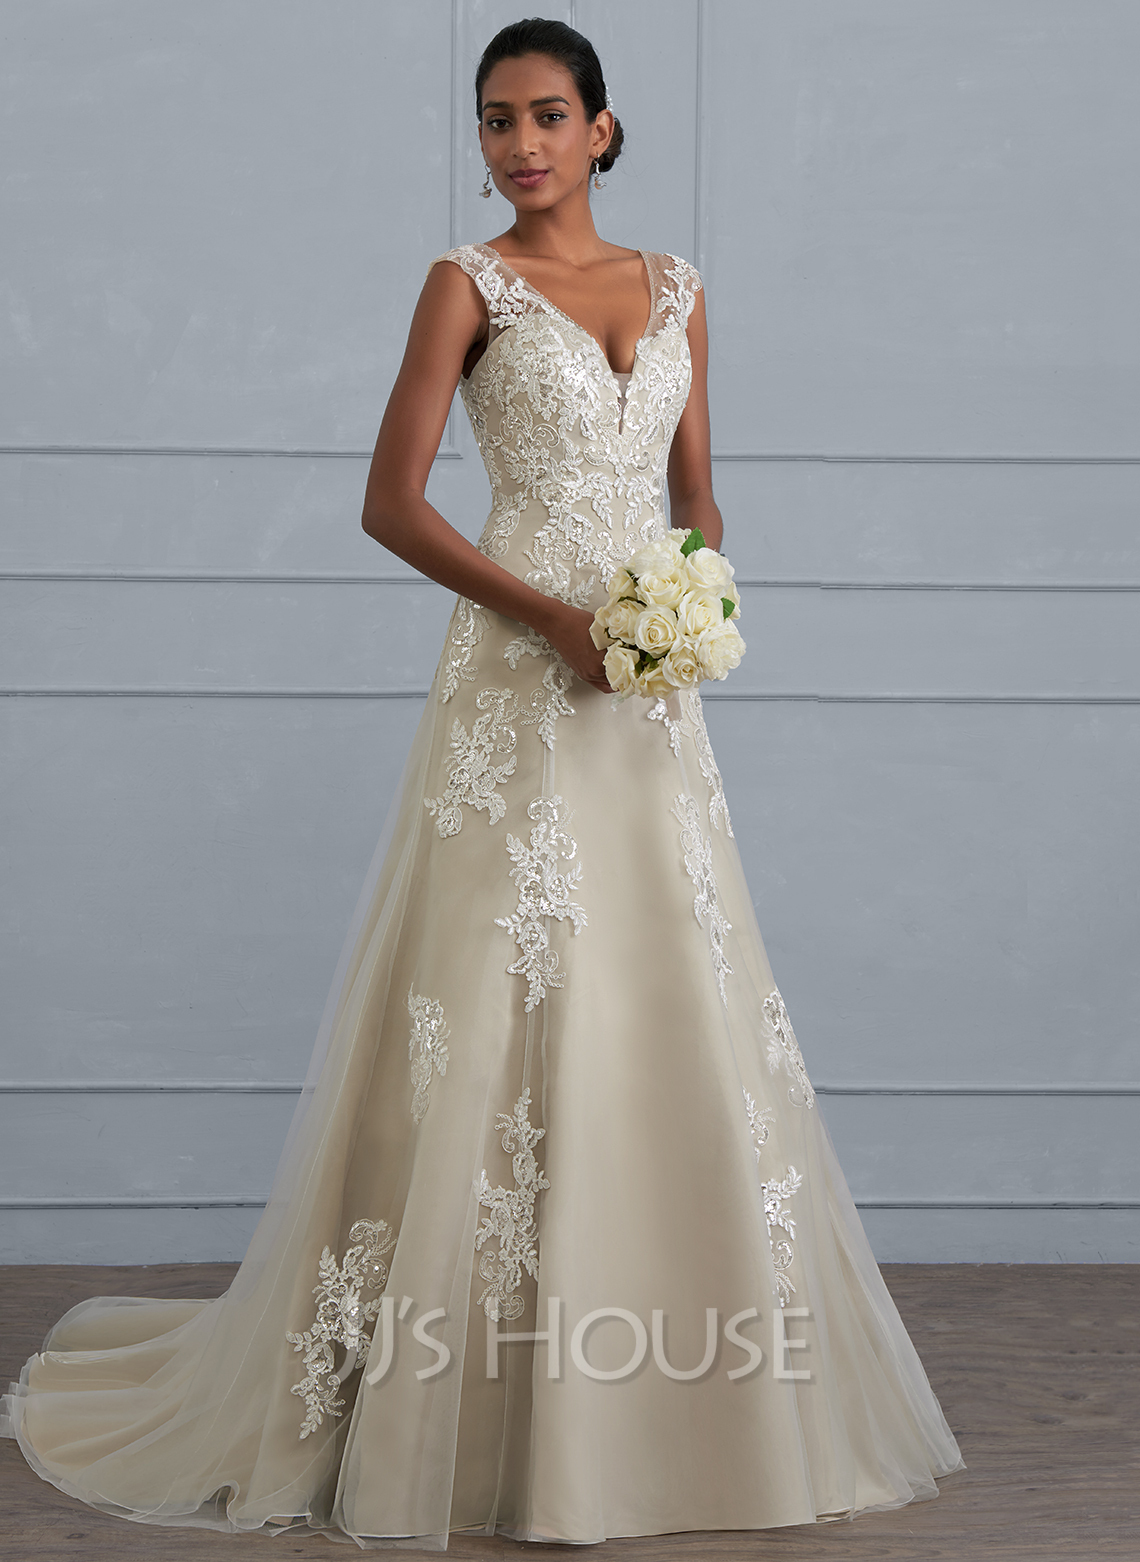 A Line Wedding Dresses.A Line Princess V Neck Court Train Tulle Lace Wedding Dress With Beading Sequins 002117023